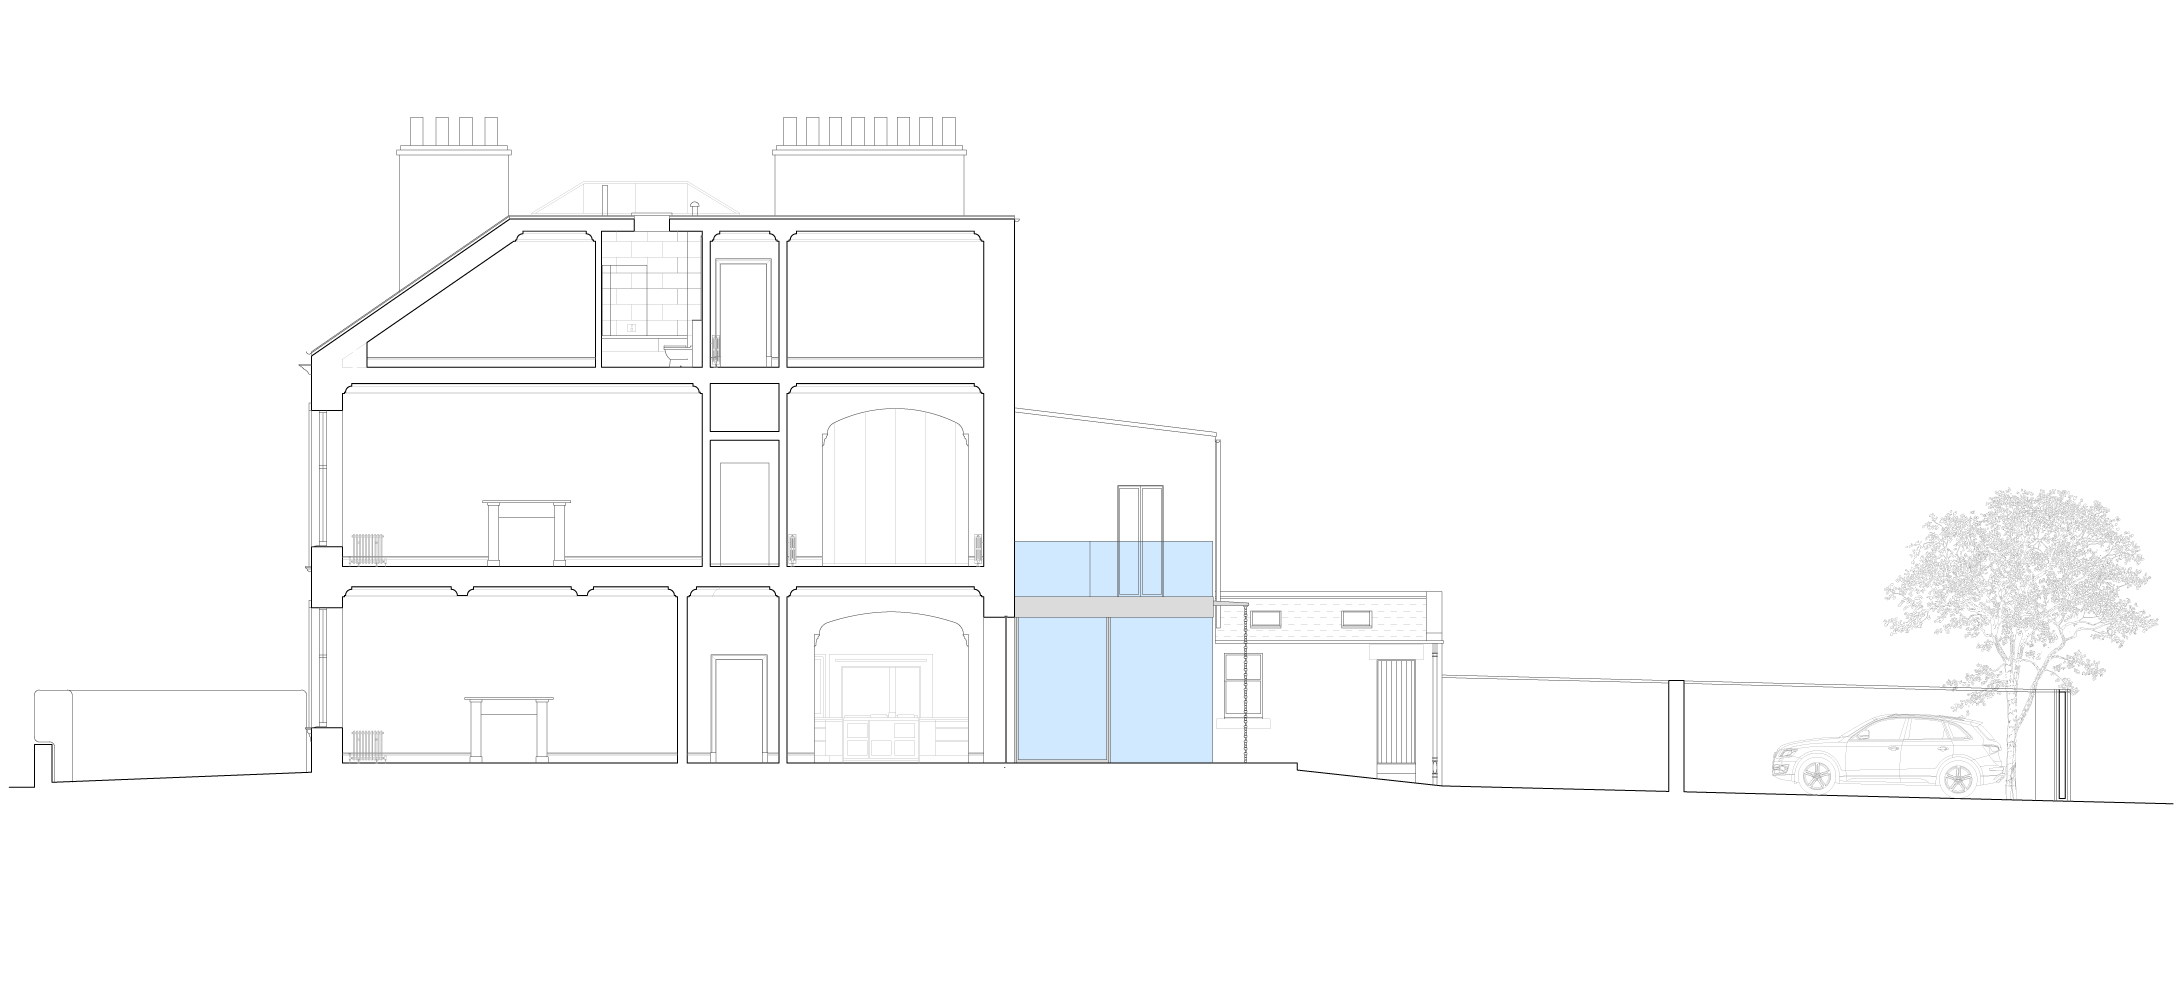 David Blaikie Architects_East Claremont Street Elevation